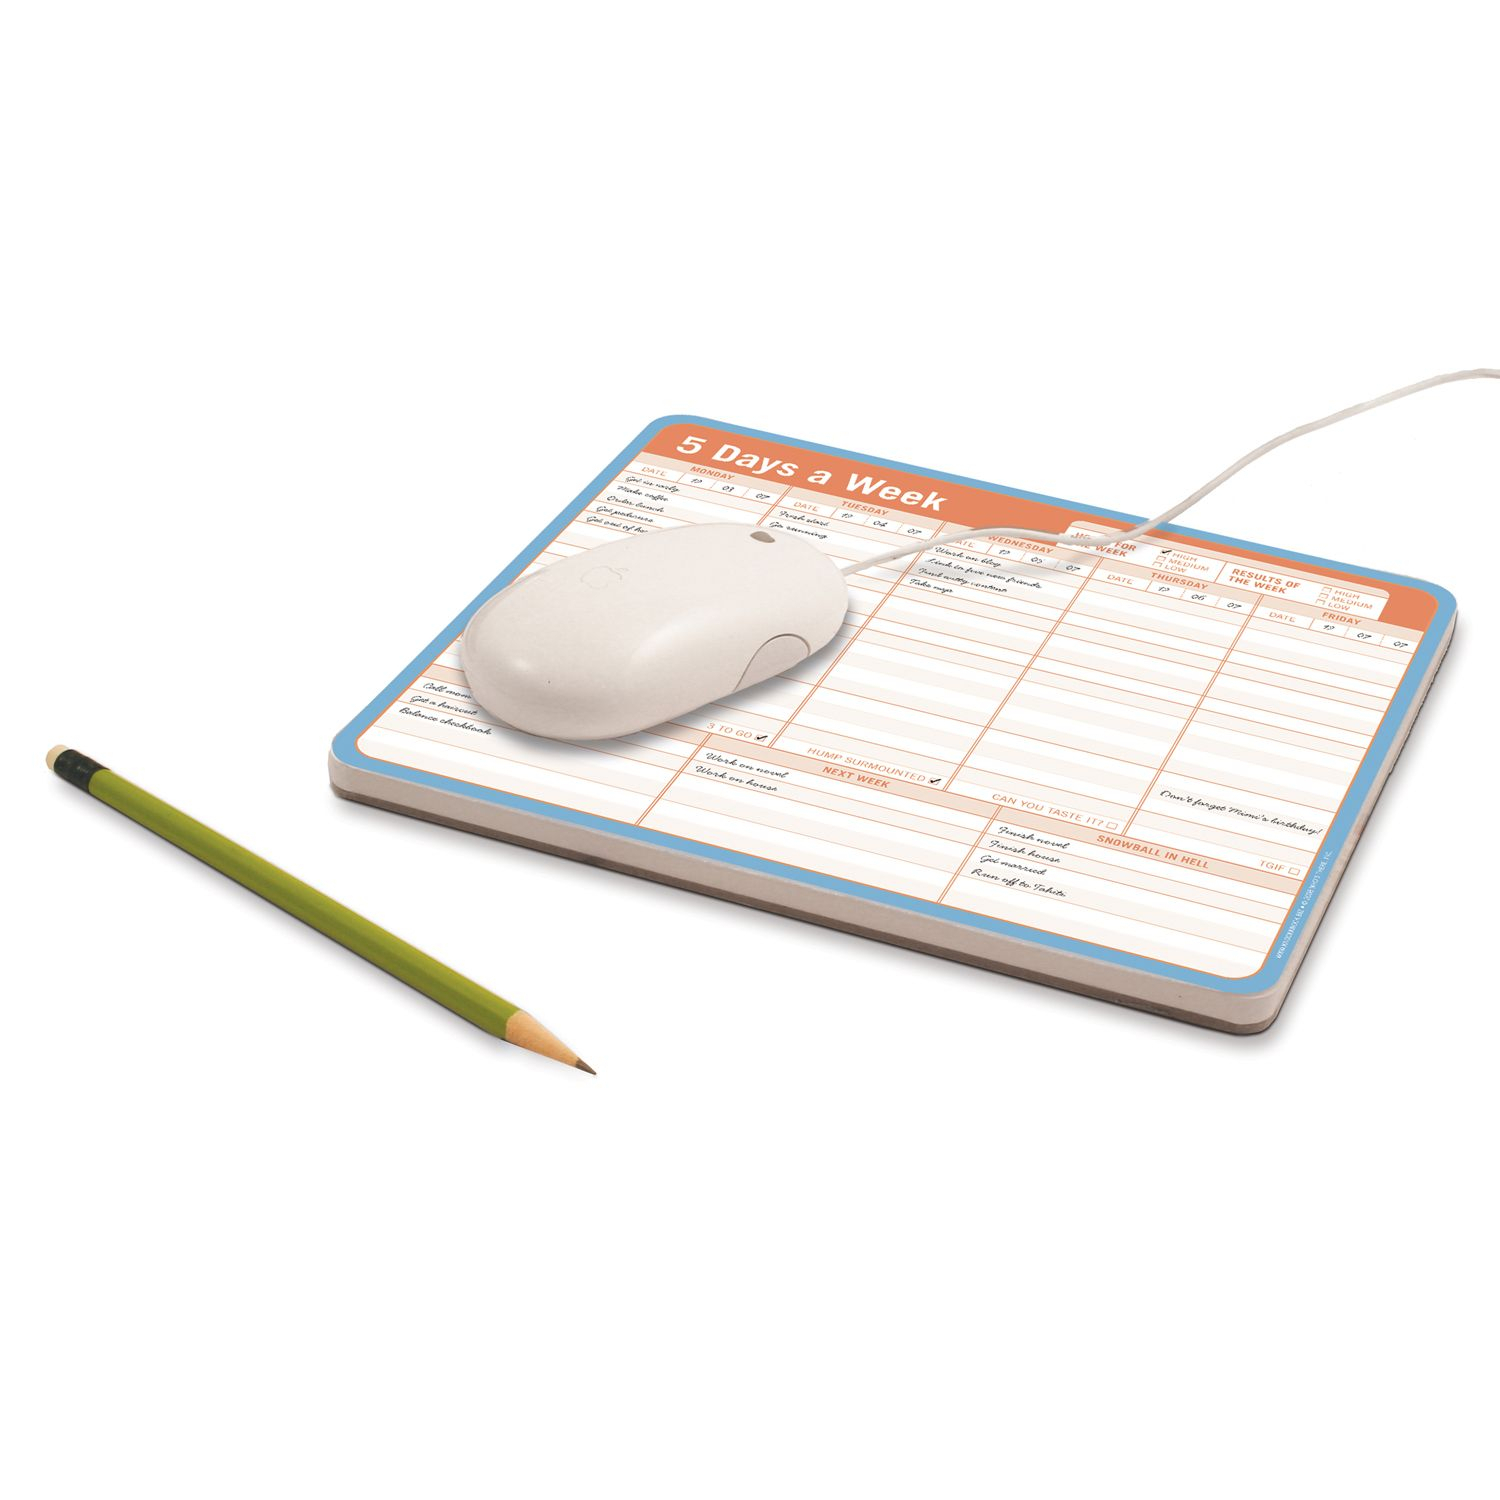 5 Days A Week Paper Mousepad | Cool Desk Accessories, Paper with regard to 5 Days A Week Planner